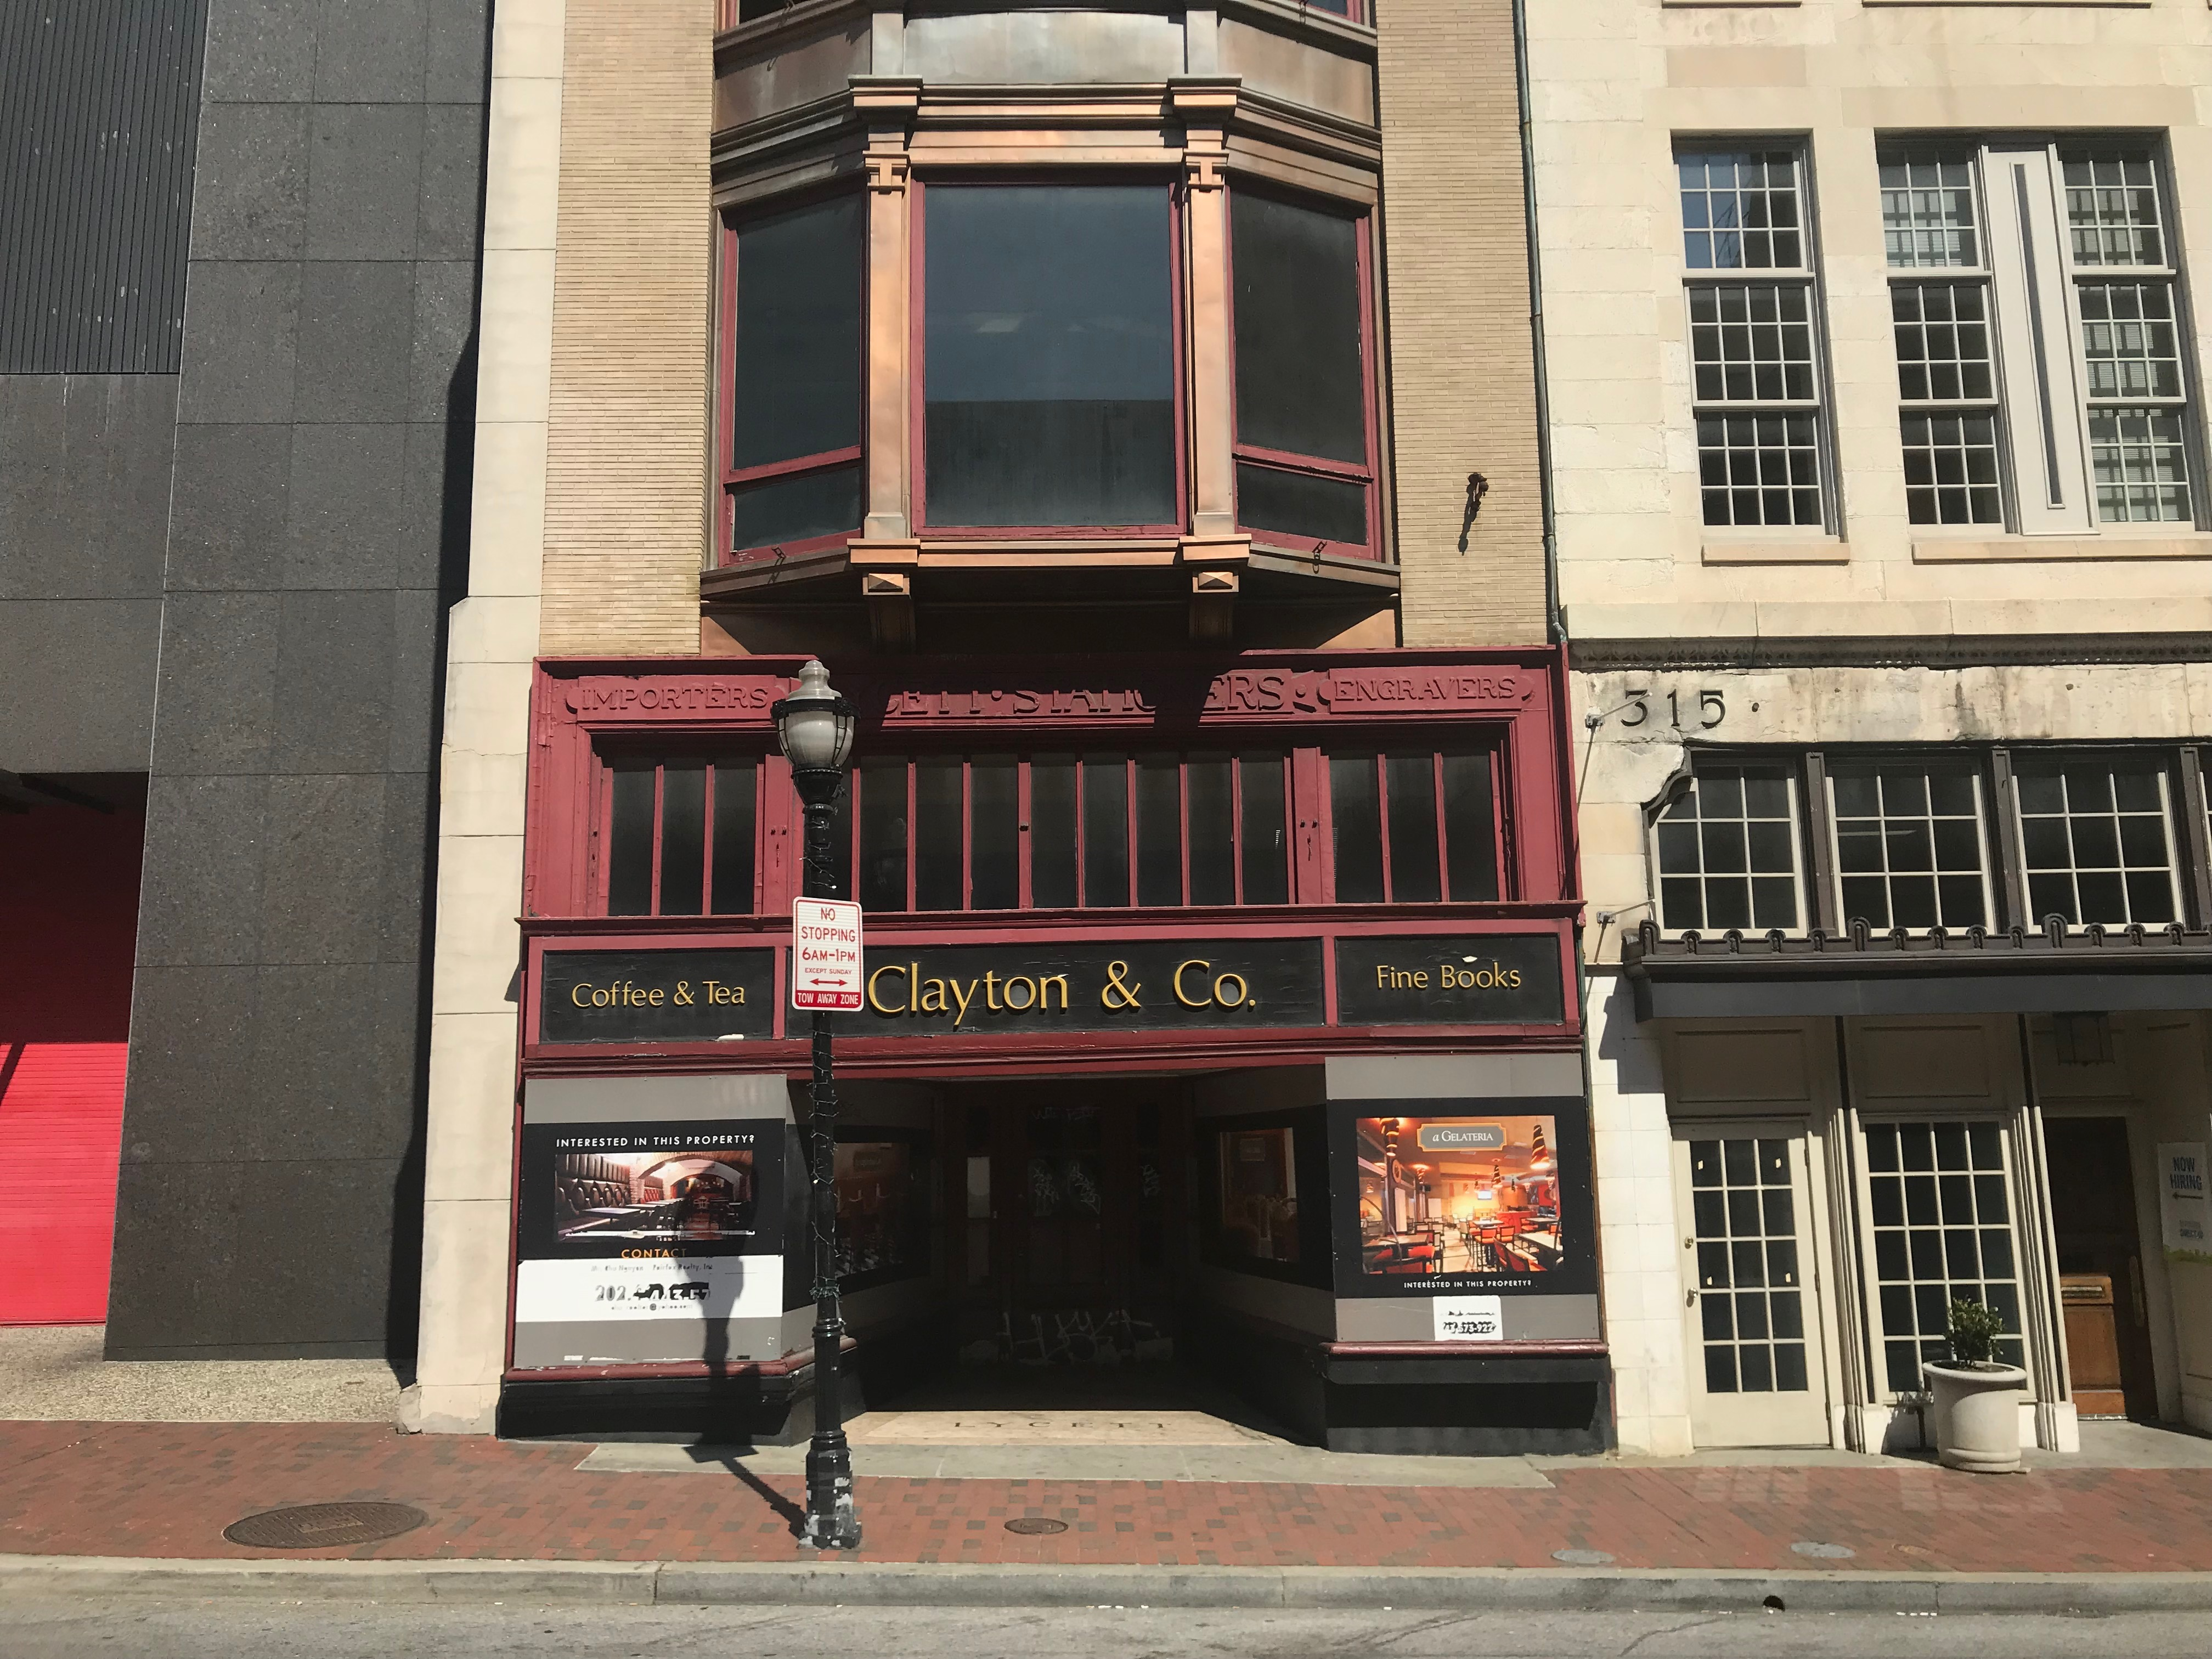 Commercial building storefront, 317 n. charles street, baltimore, md 21201 photo